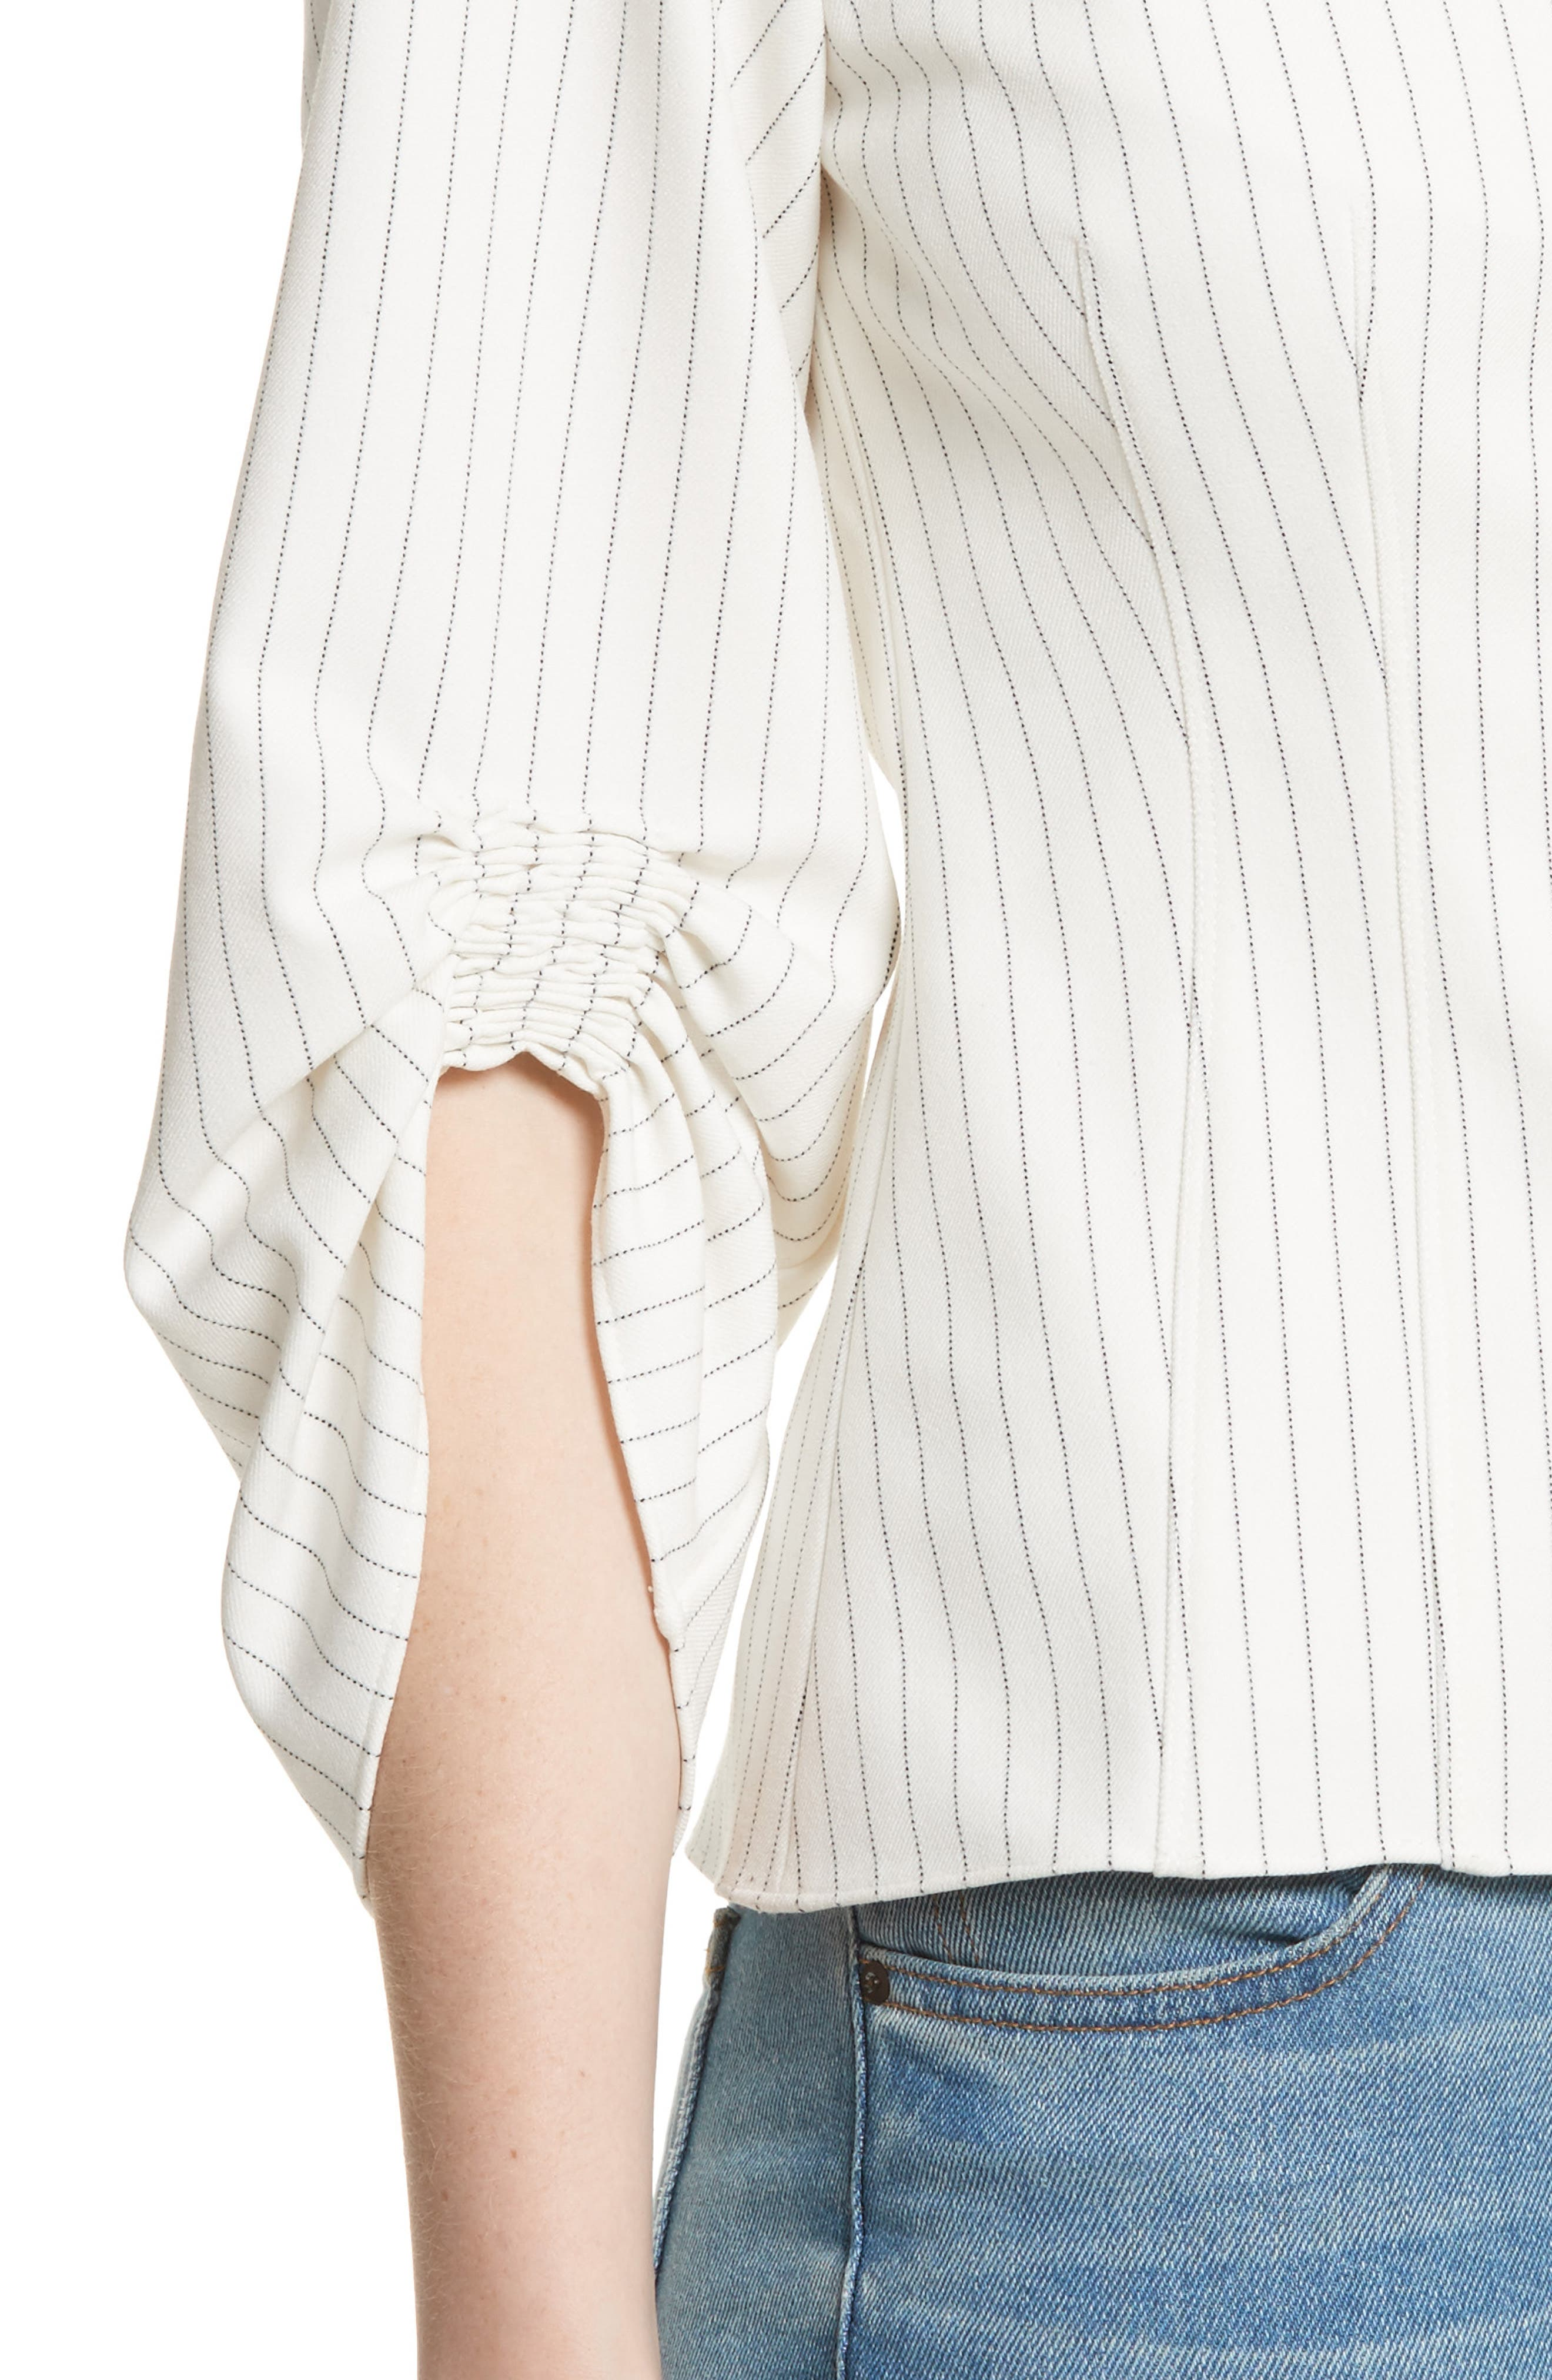 Corset Ruched Sleeve Top,                             Alternate thumbnail 4, color,                             907